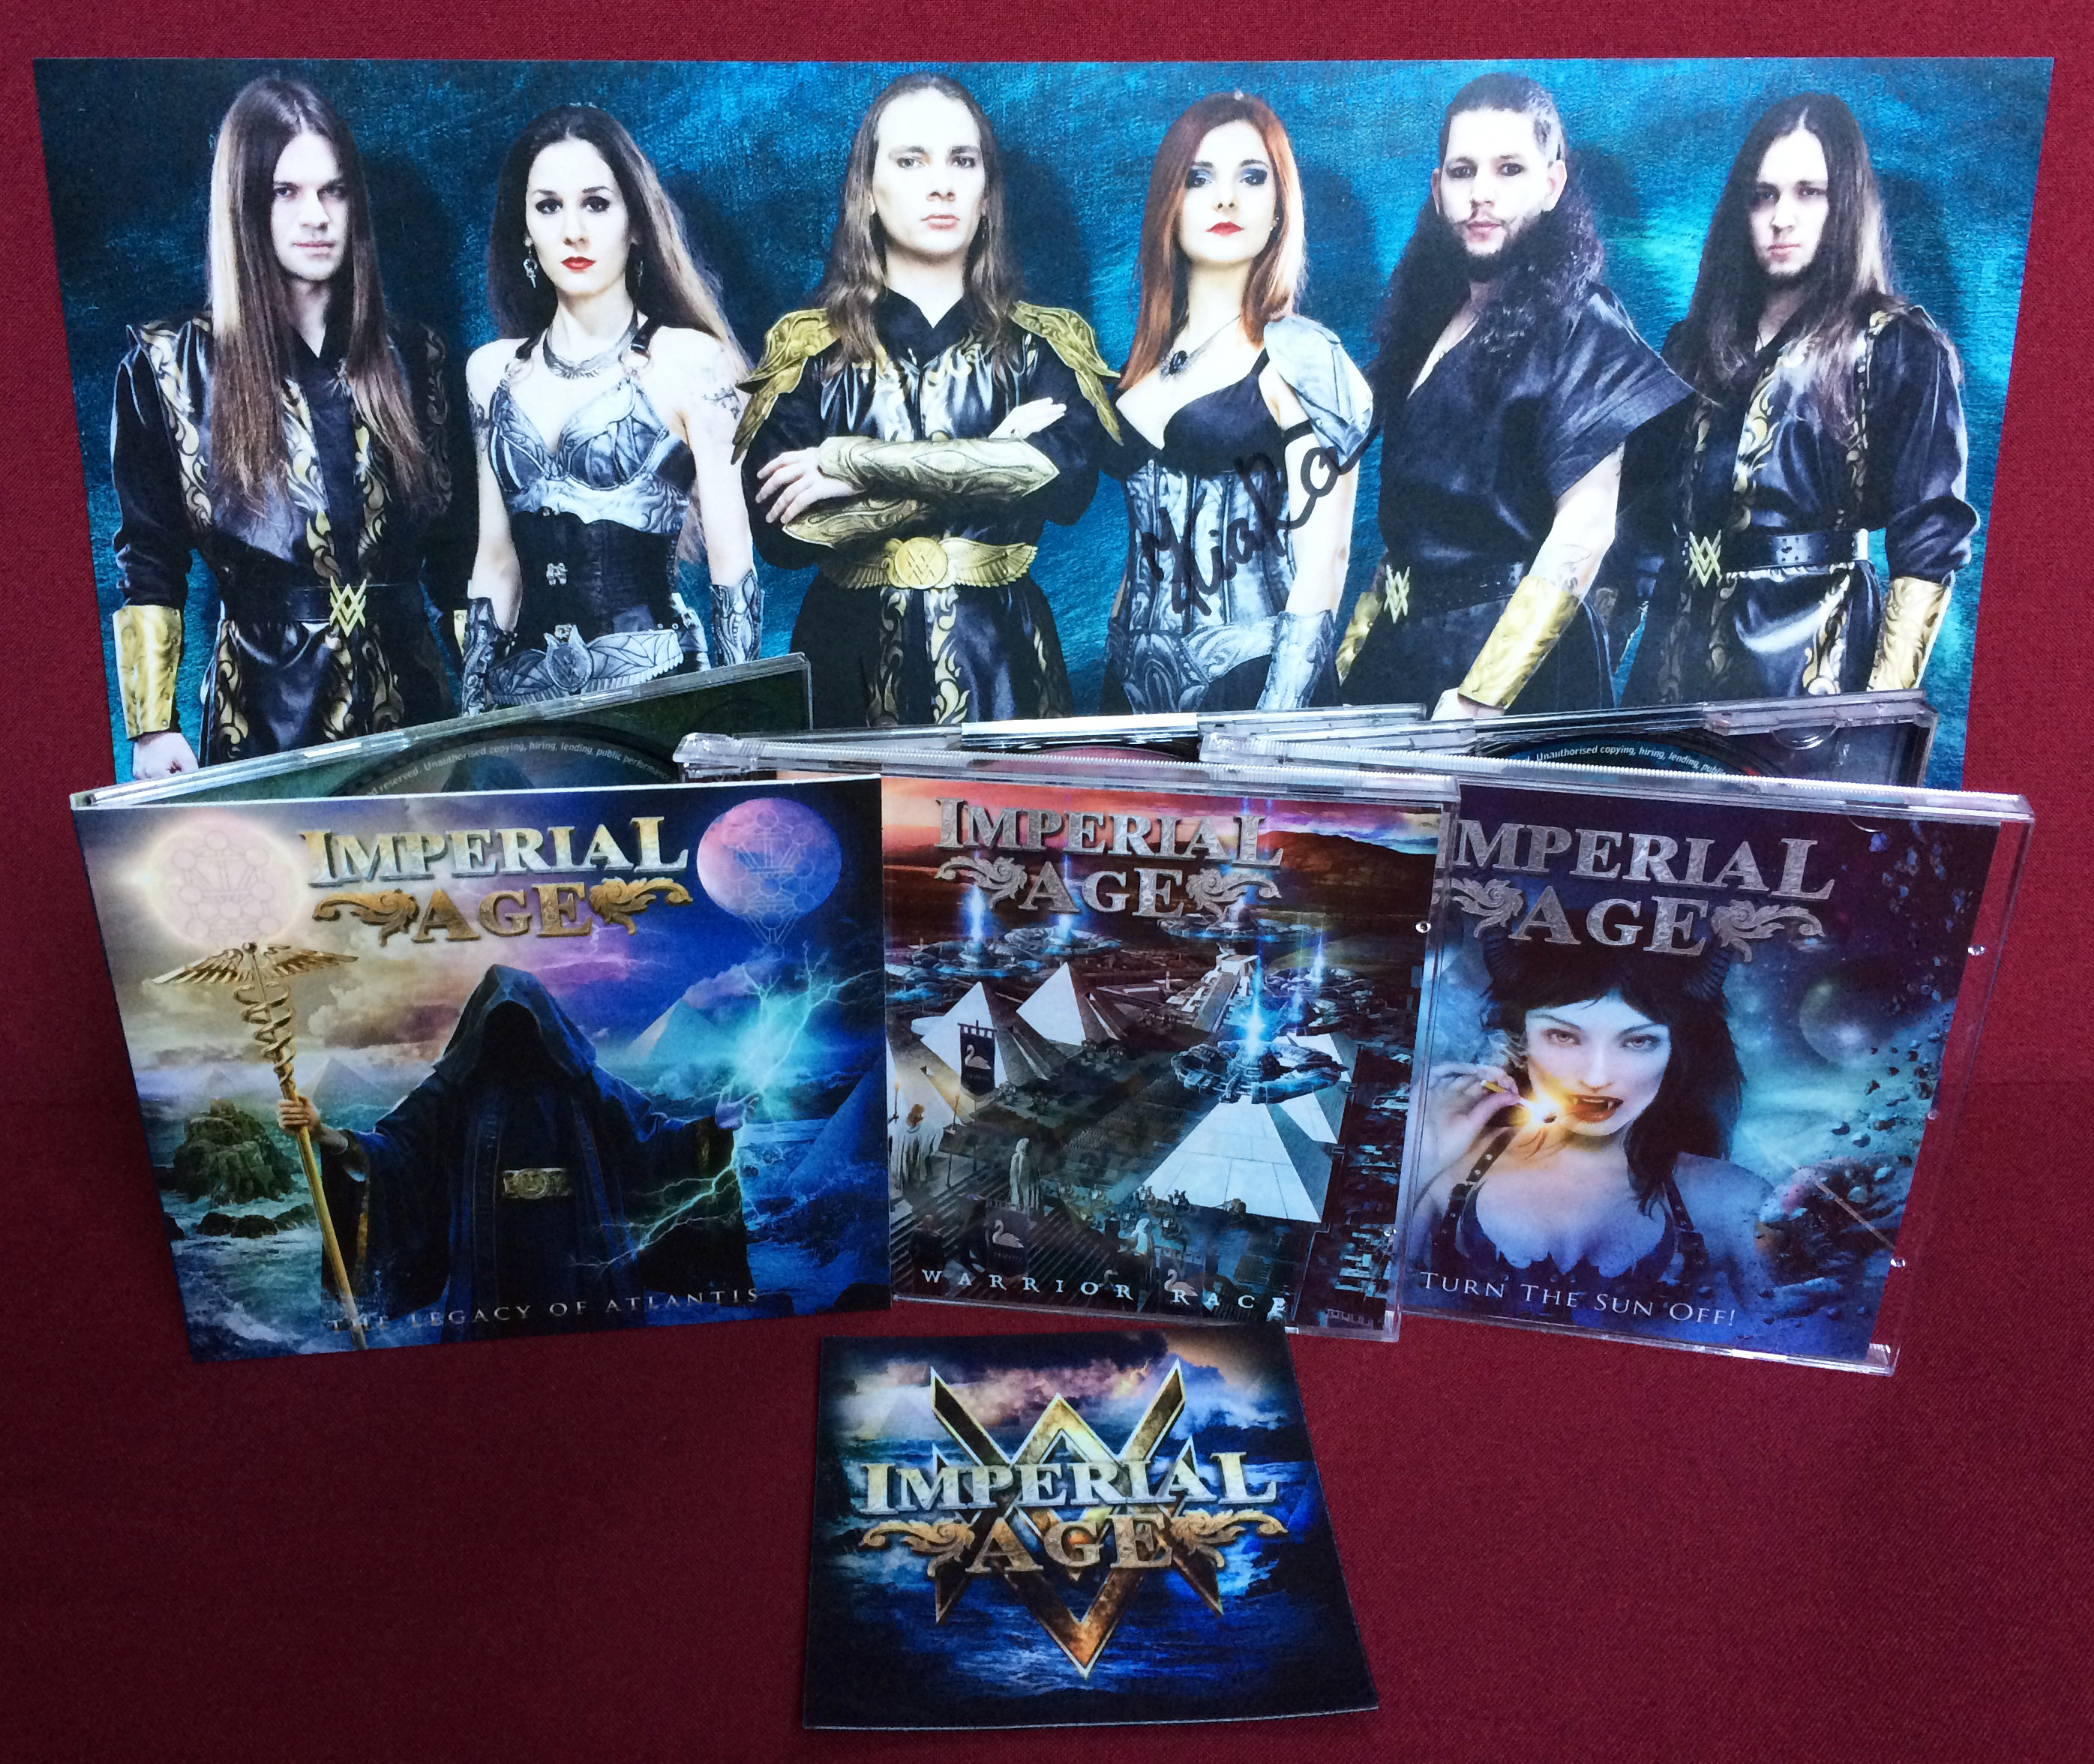 Special offer: 3 CDs, A3 poster and patch 00027